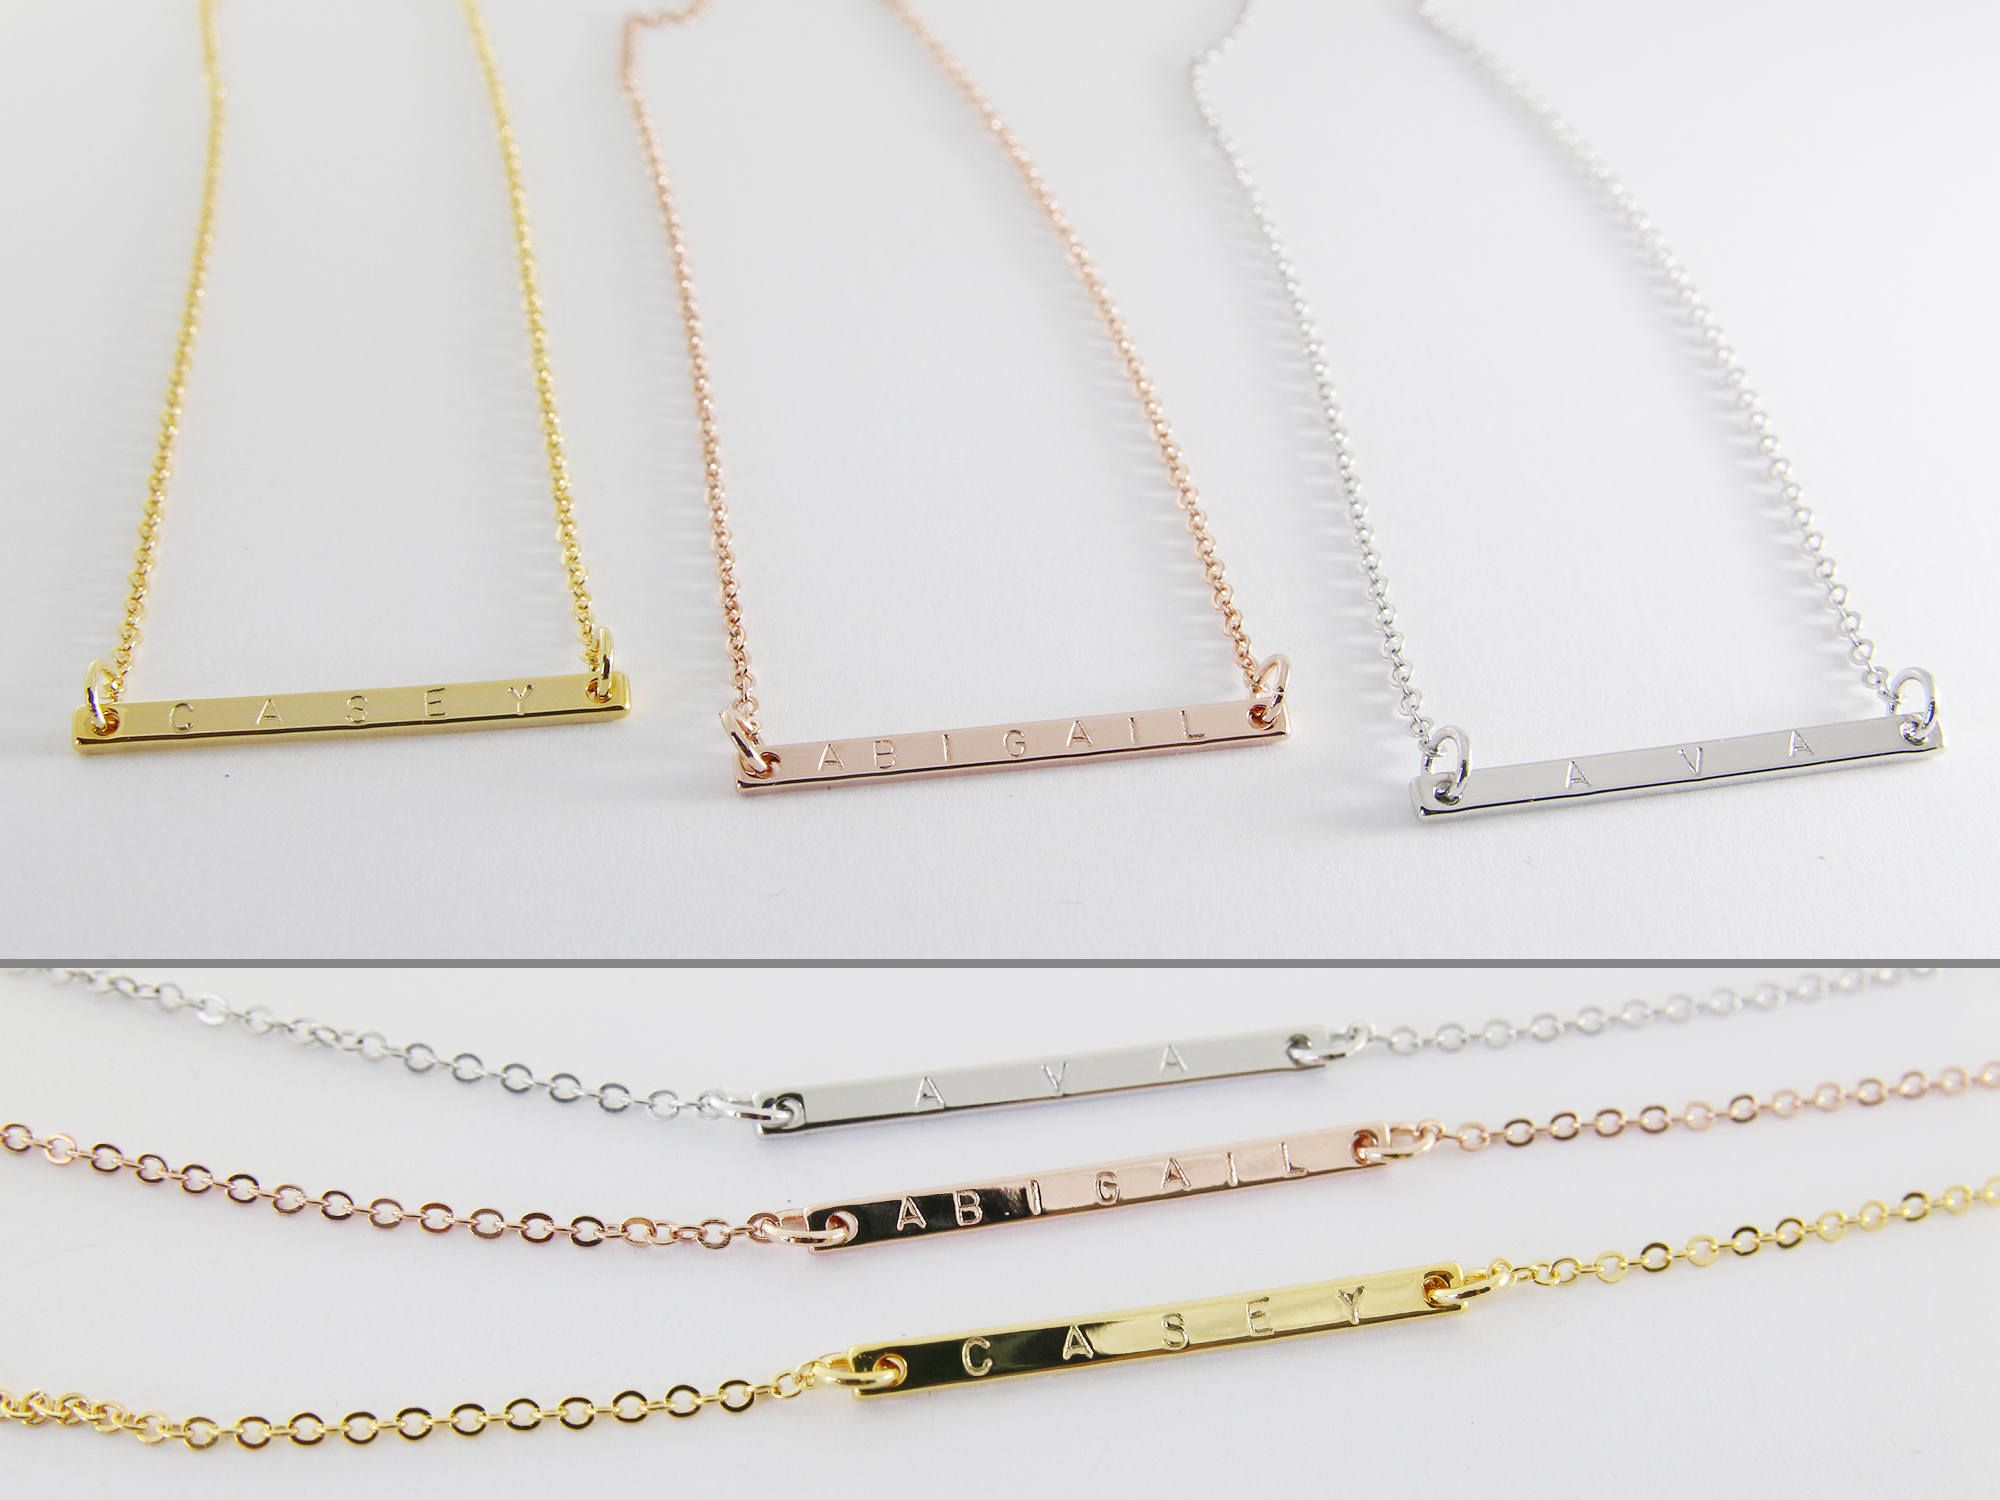 Personalized Bar Necklace. Simple and minimal hand stamped name bar Necklace. This delicate necklace can be customized with names, initials, dates, coordinates or roman numerals. Looks lovely layered with other pieces, or it alone!